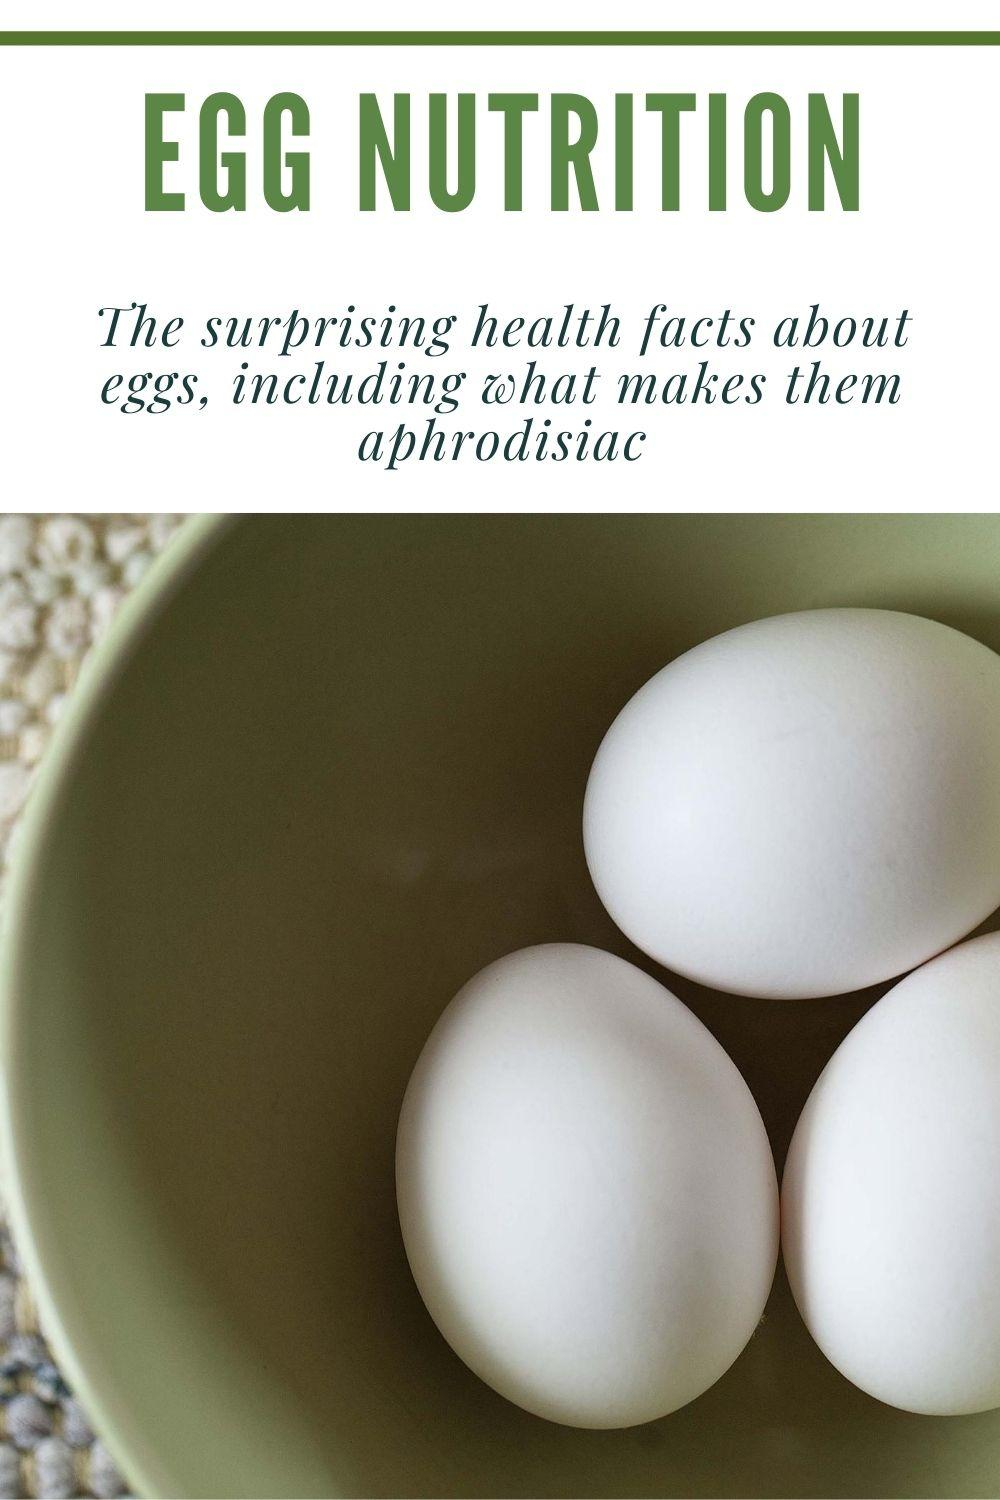 egg nutrition graphic